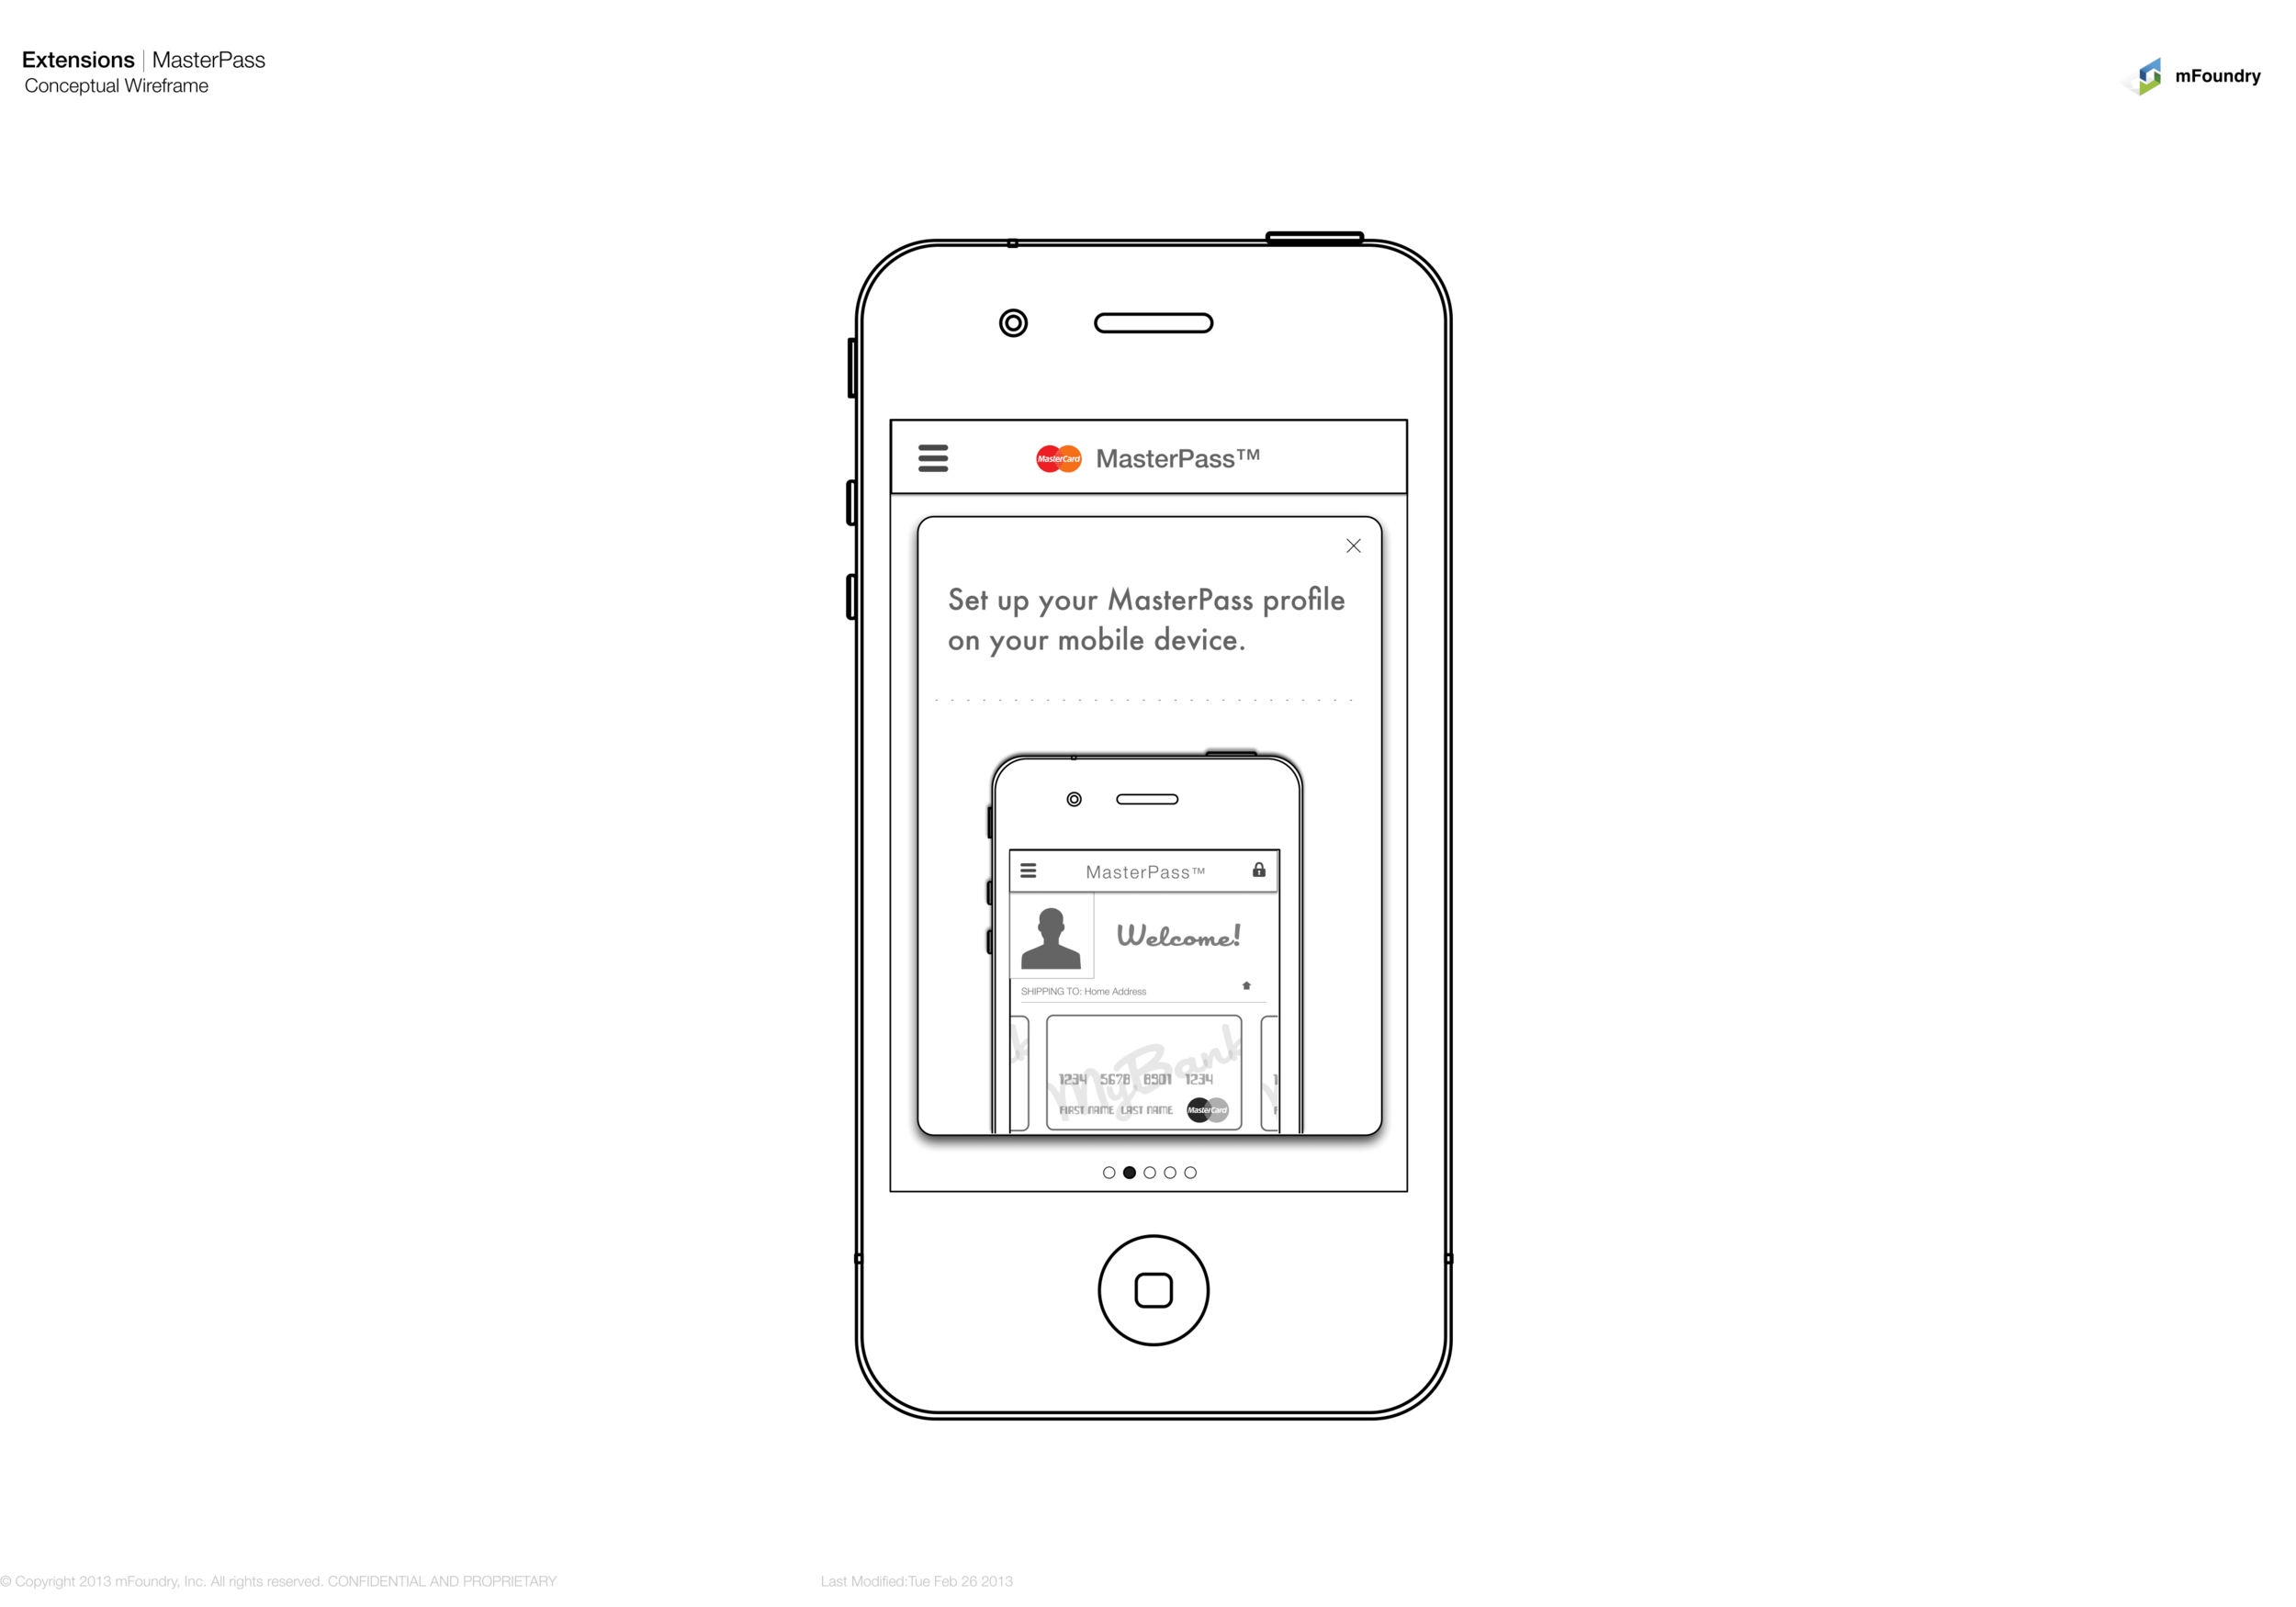 wireframes-MasterPass-v2-04.png